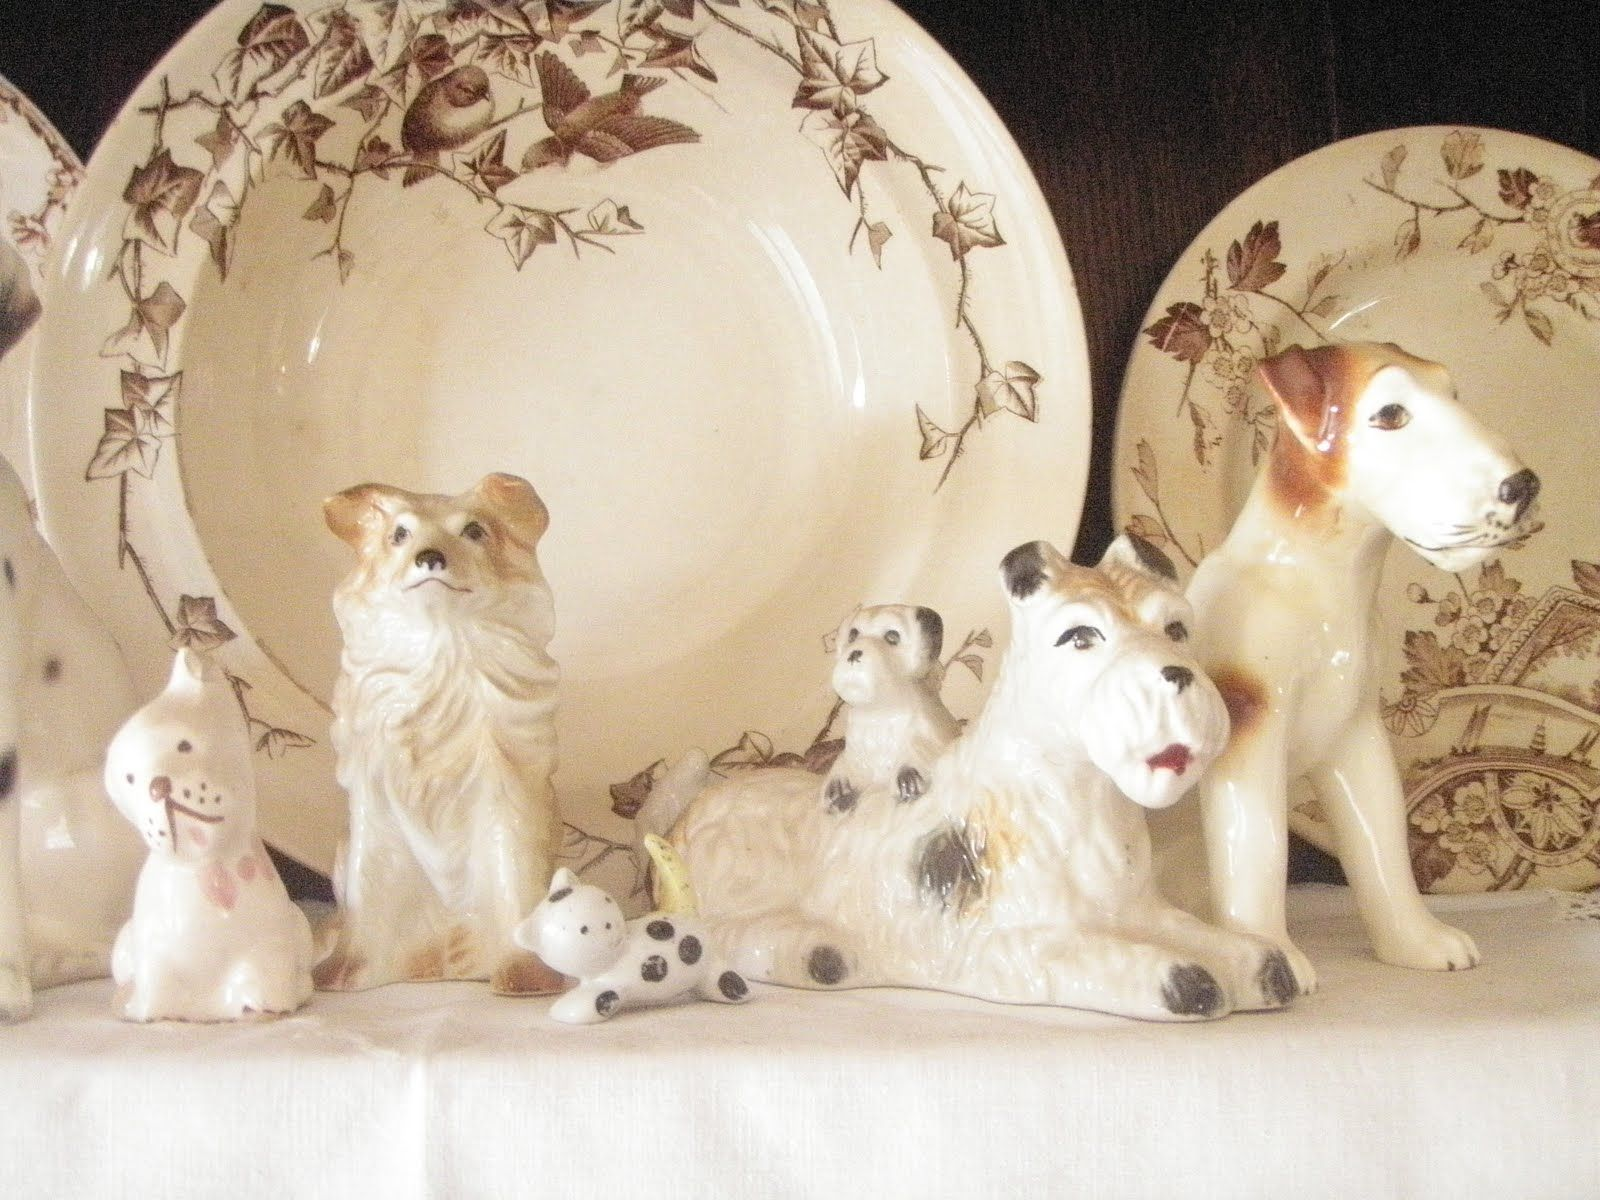 Love the dog figurines with the brown transferware!